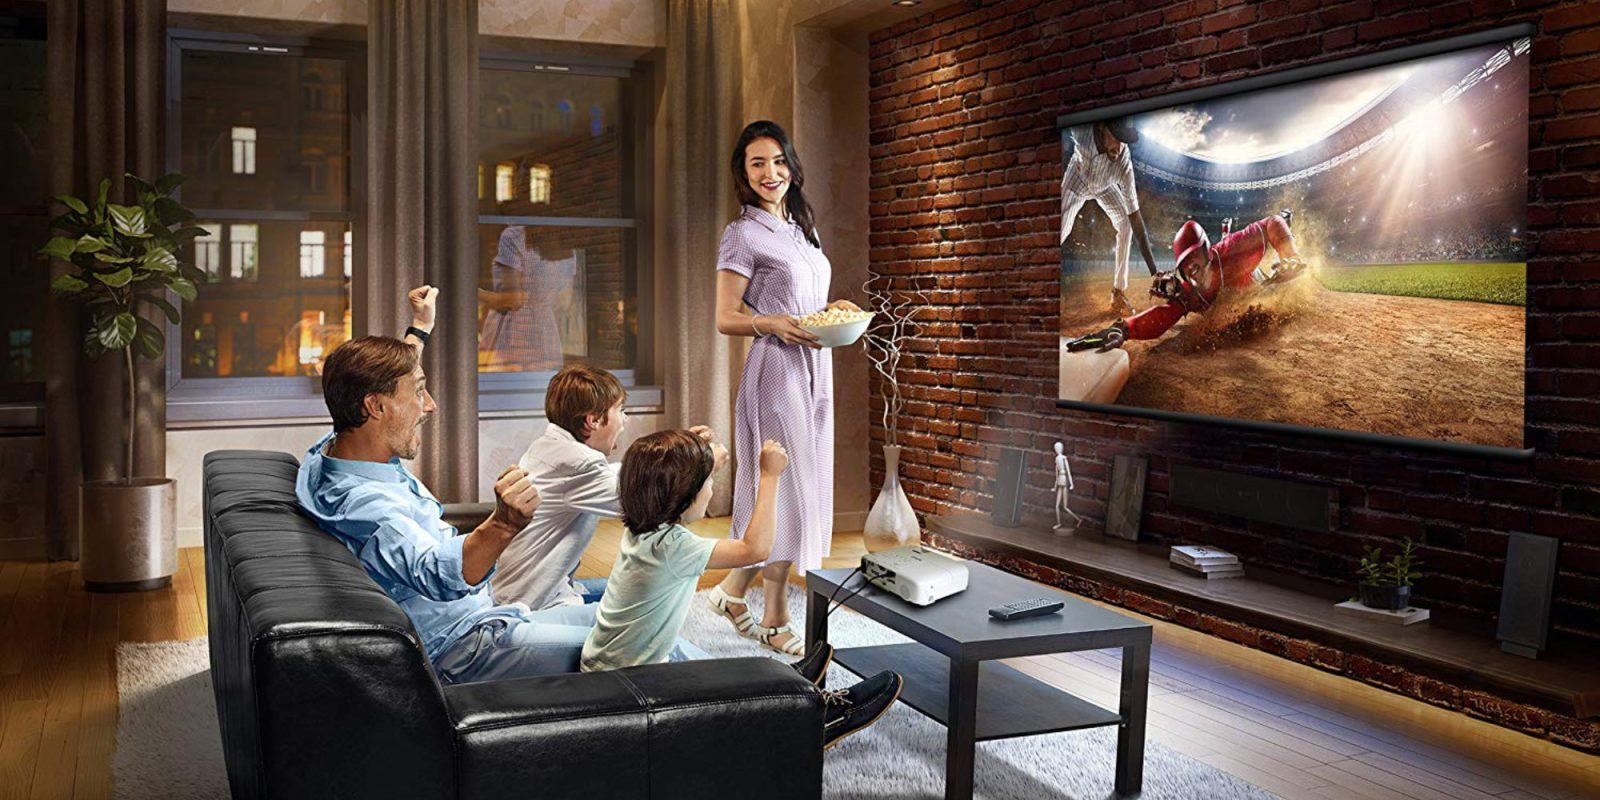 This Epson Home Cinema 1080p projector will supersize movies, games, more: $465 (Reg. $550+)